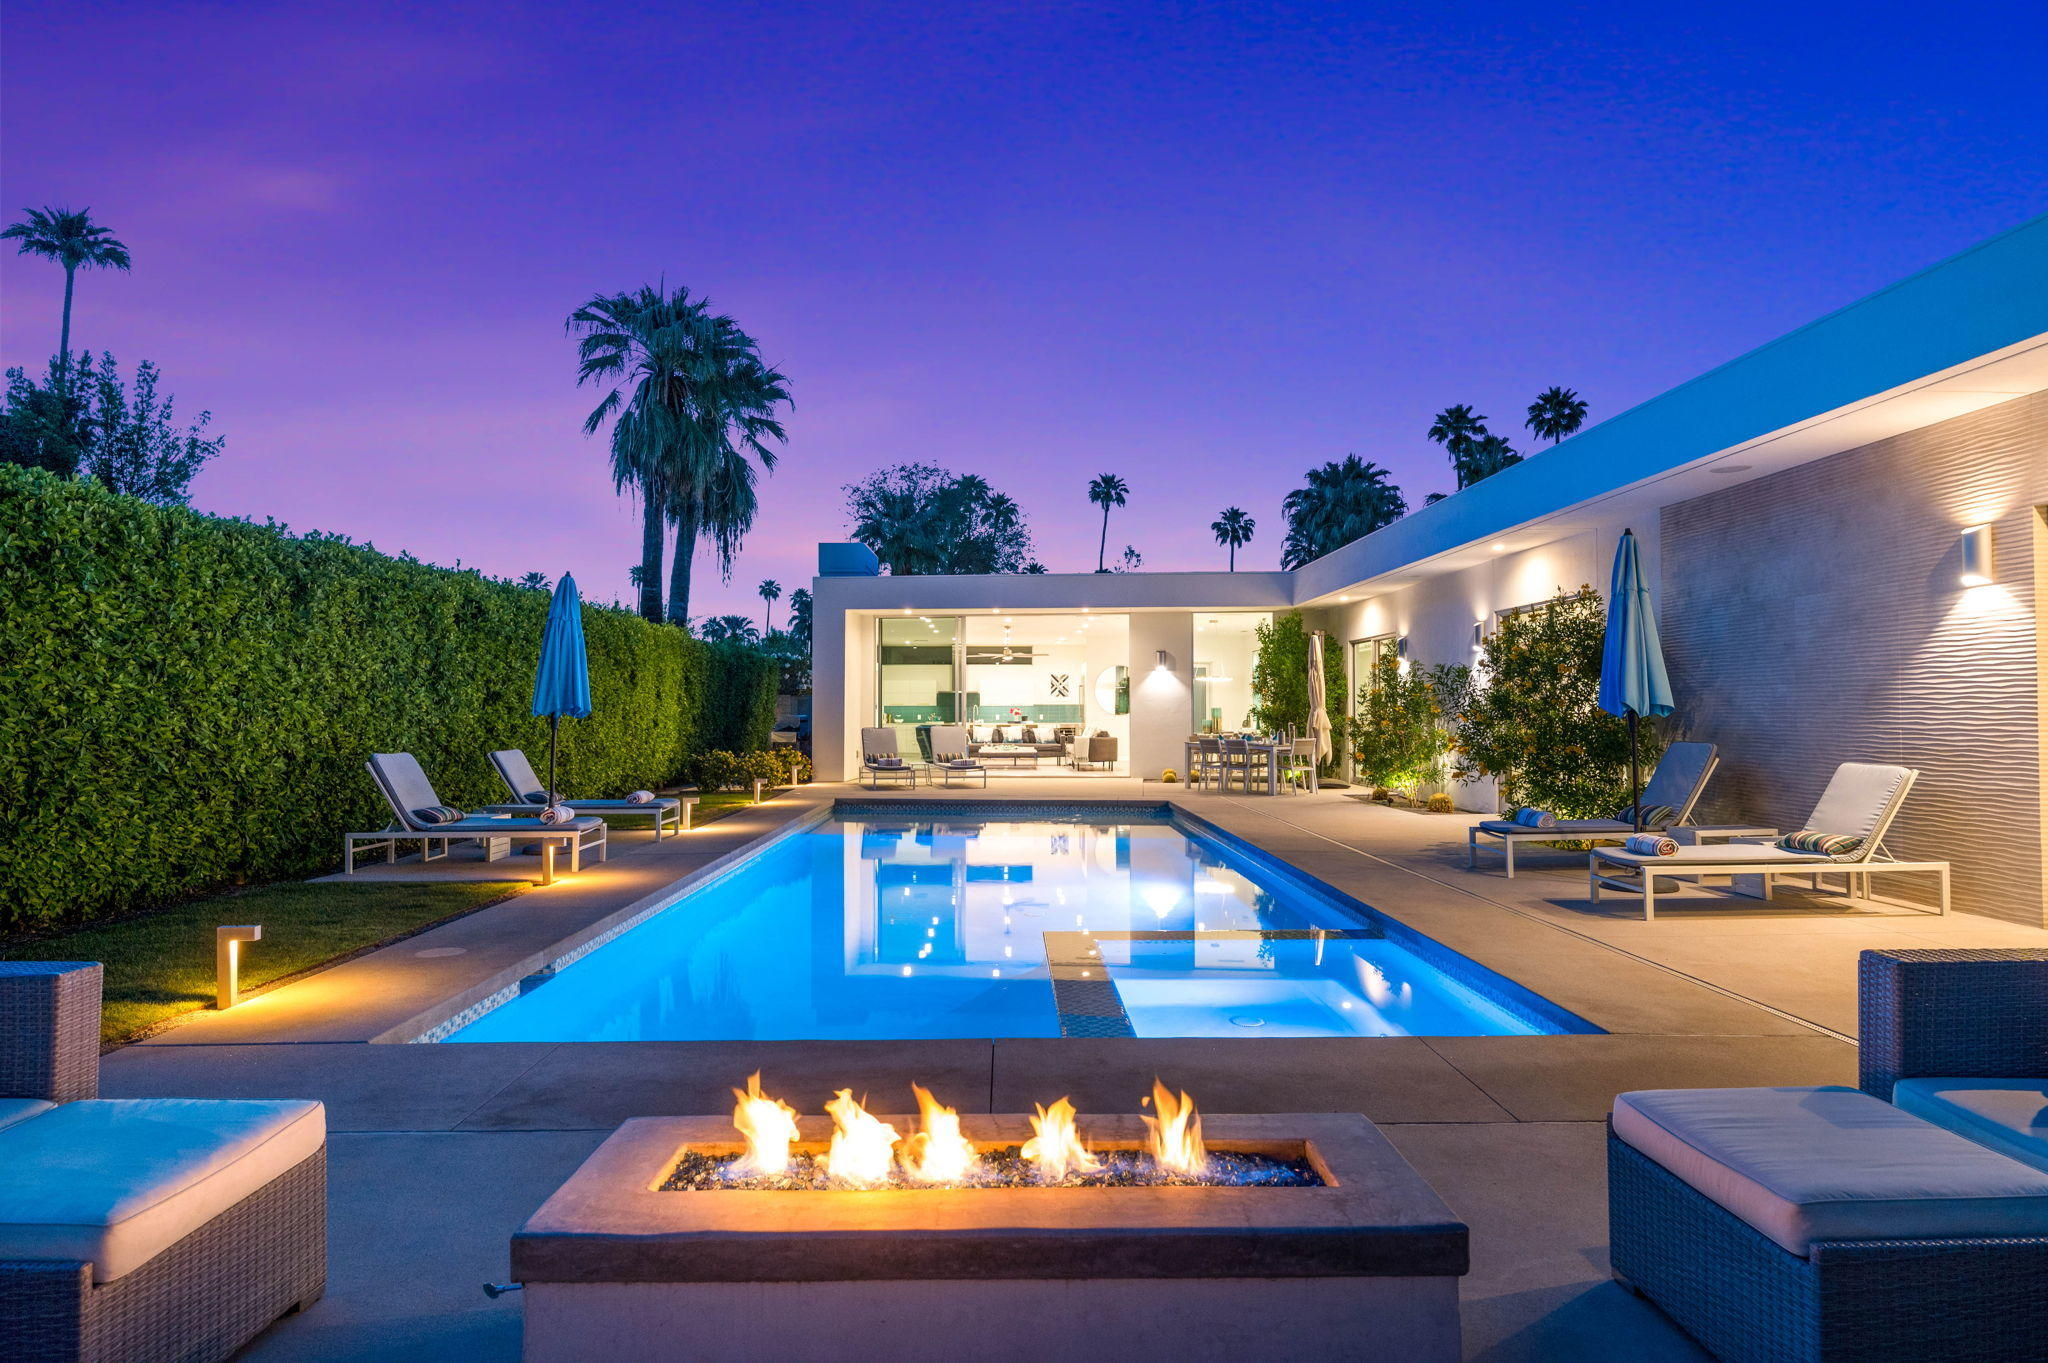 New Century Modern meets Wexler-inspired design. Nestled in the quiet and sought-after neighborhood of Tahquitz River Estates (1 mile from the strip), this newly built (2017) Sanborn and Modlin masterpiece was meticulously designed to scream PALM SPRINGS! The moment you swing open the front door, your eyes shoot miles south through the 10'x16' floor-to-ceiling (stackable) Fleetwood aluminum sliders, capturing the 16'x40' destination pool, gorgeous palm trees, and the jaw-dropping San Jacintos mountains. 3 of the 4 bedrooms have an en-suite bathroom. The 4th bedroom is considered a hybrid room for use as an office or media room. The glass sliders in the hallway offer mountain views the entire journey to the primary bedroom. 8' stackable doors in the primary bedroom offer glorious western views, and you're just steps away from the spa. Property highlights include: 10' ceilings, two car garage, upgraded acrylic stucco on the entire exterior, 16'x6' floating seamless corner window in the great room, 60'' linear gas-burning Crave series fireplace, and gourmet kitchen with Thermador professional stainless-steel appliances. This 2800 sq.ft. home boasts a fully integrated home automation system allowing control of lights, shades, music, pool, spa, security, and more. Many elements also integrate directly with Amazon, Alexa, Google Home & Apple HomeKit for smart-hub and smartphone app control. Short-term rental friendly. YOU OWN THE LAND. Hands down the best active listing in PS.